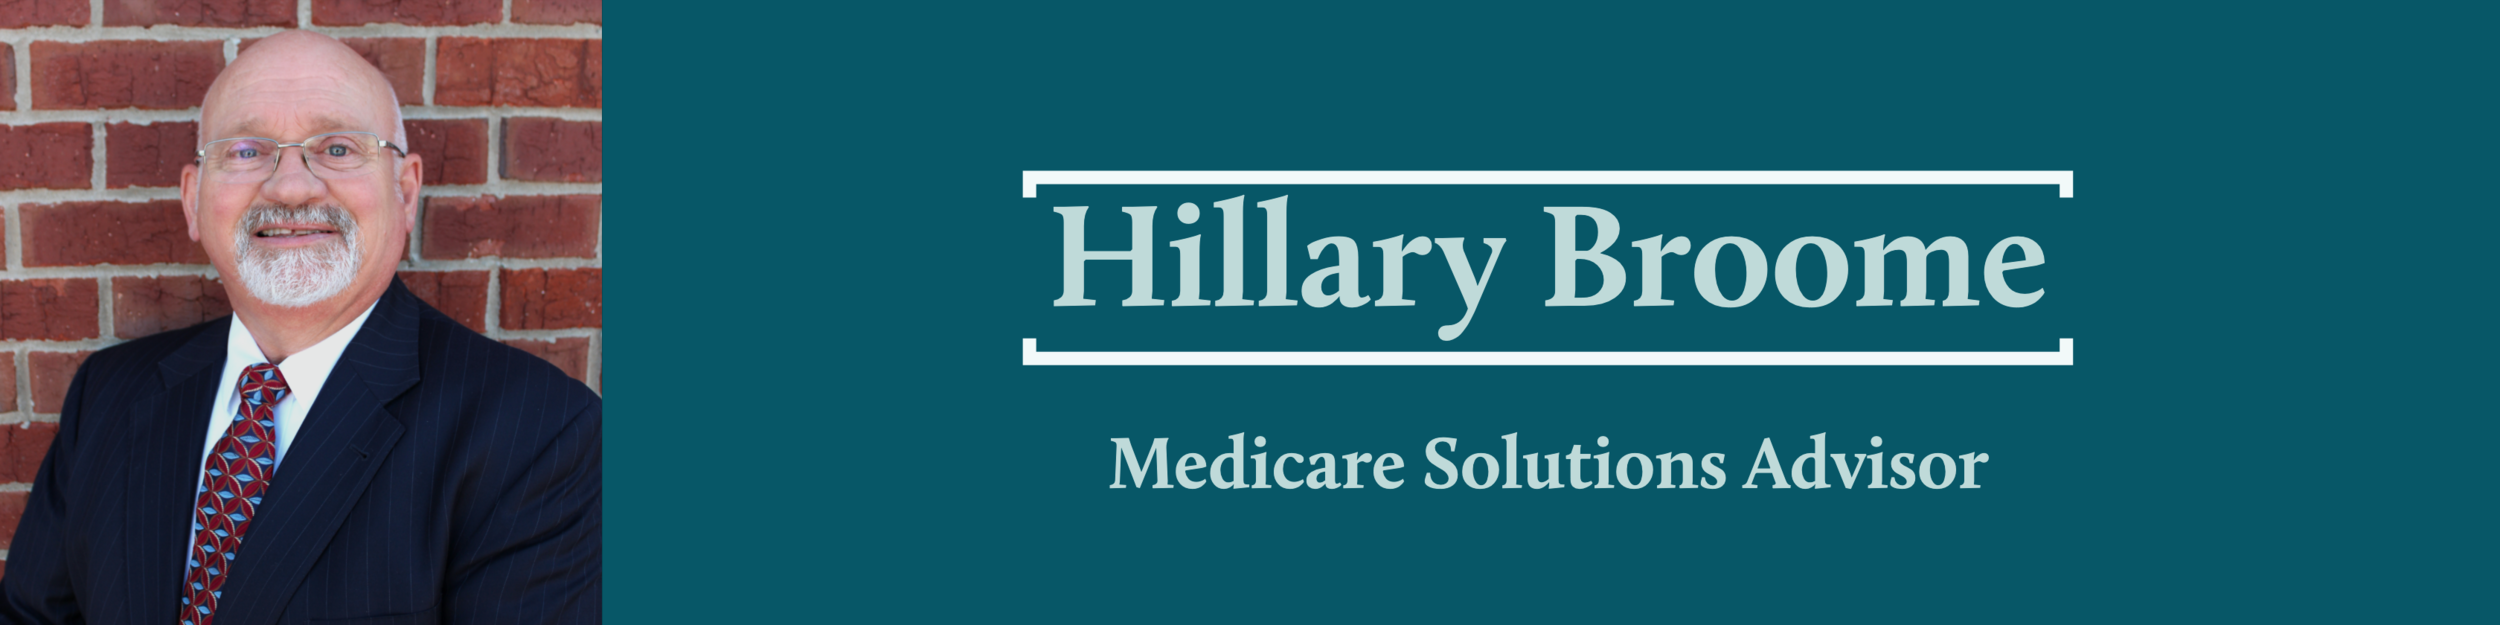 Hillary Broome Banner(1).png